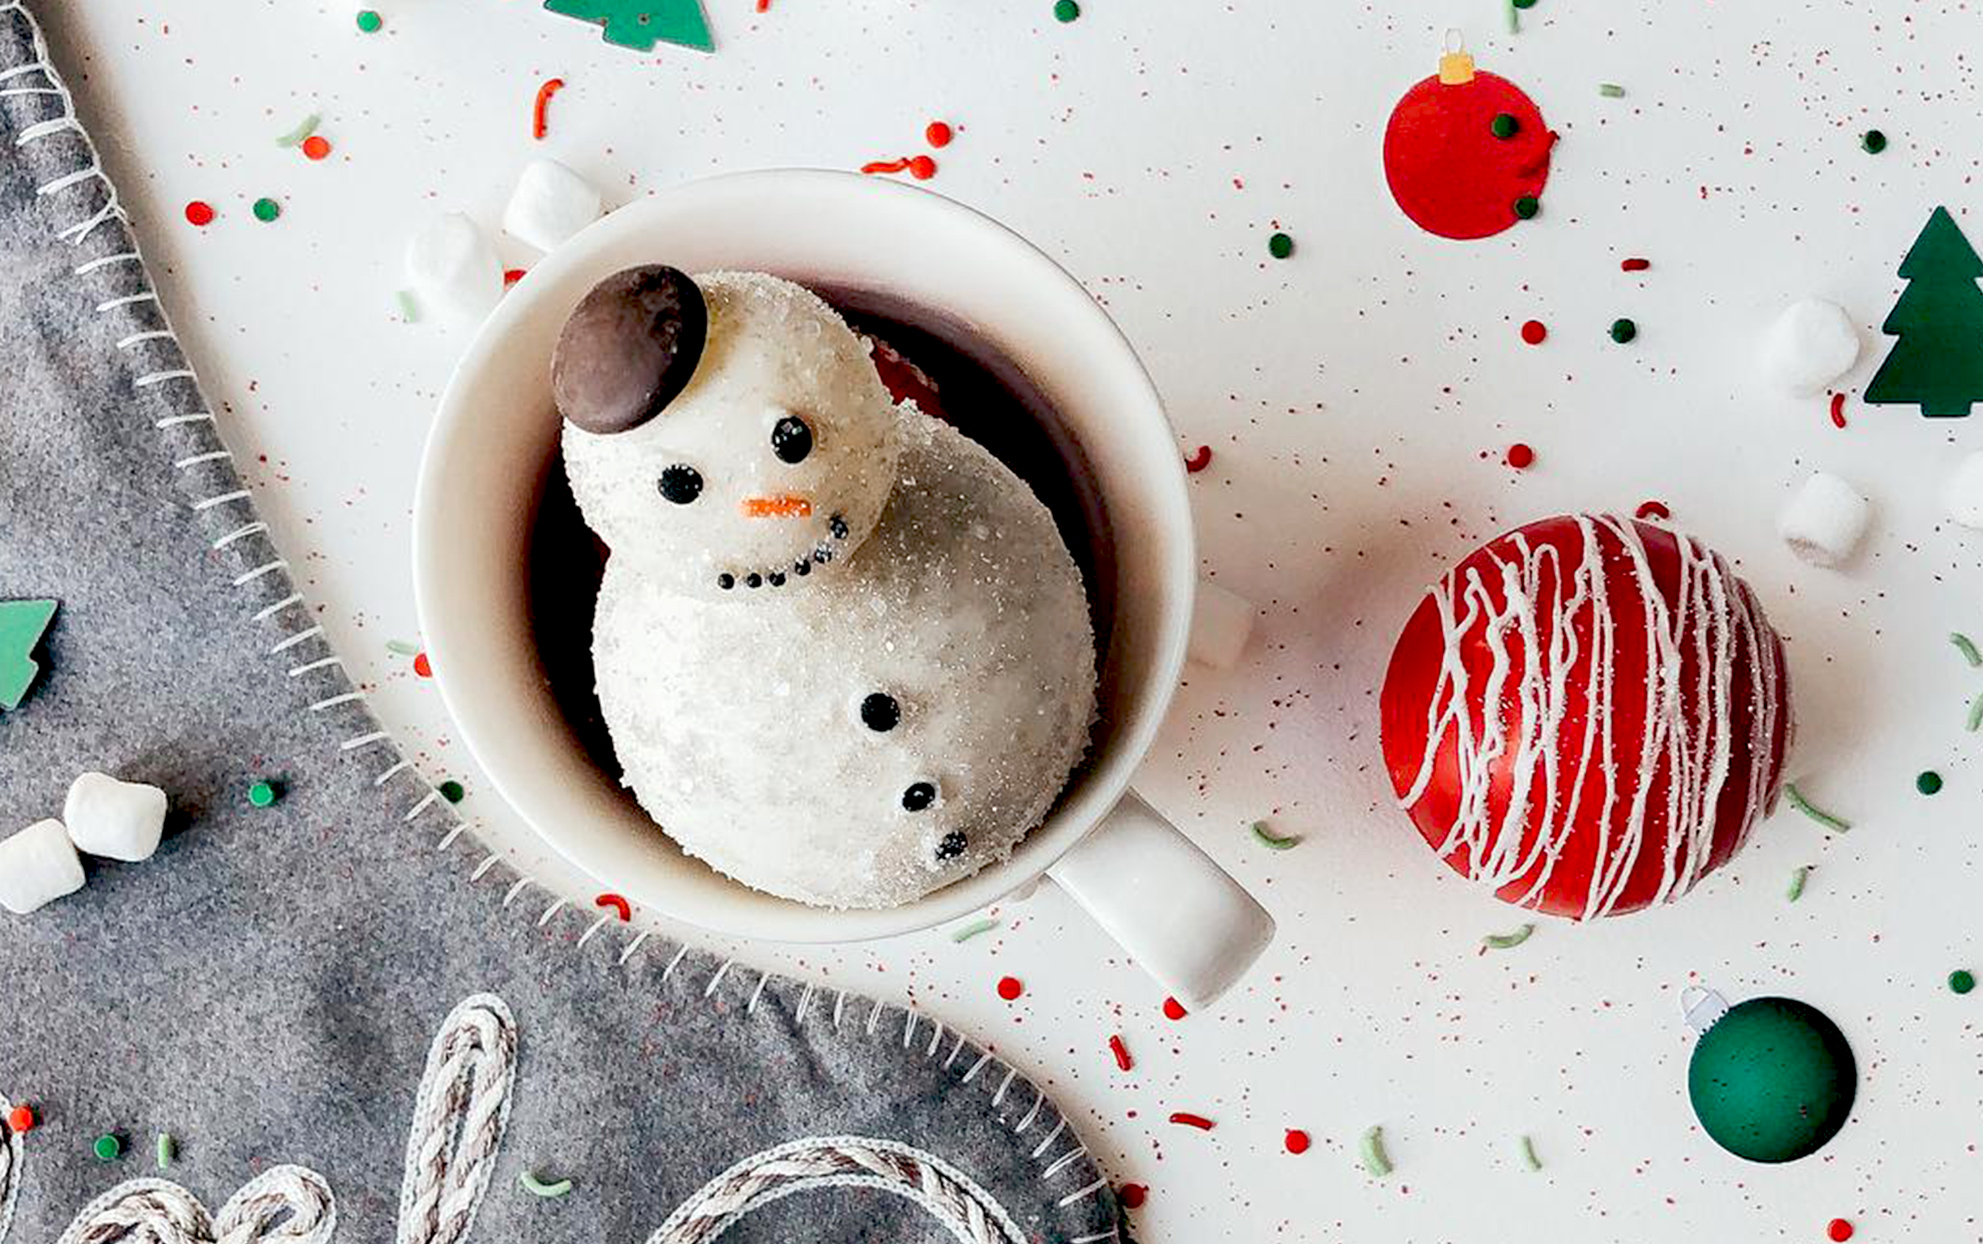 A snowman hot cocoa bomb in a cup of cocoa with holiday decor